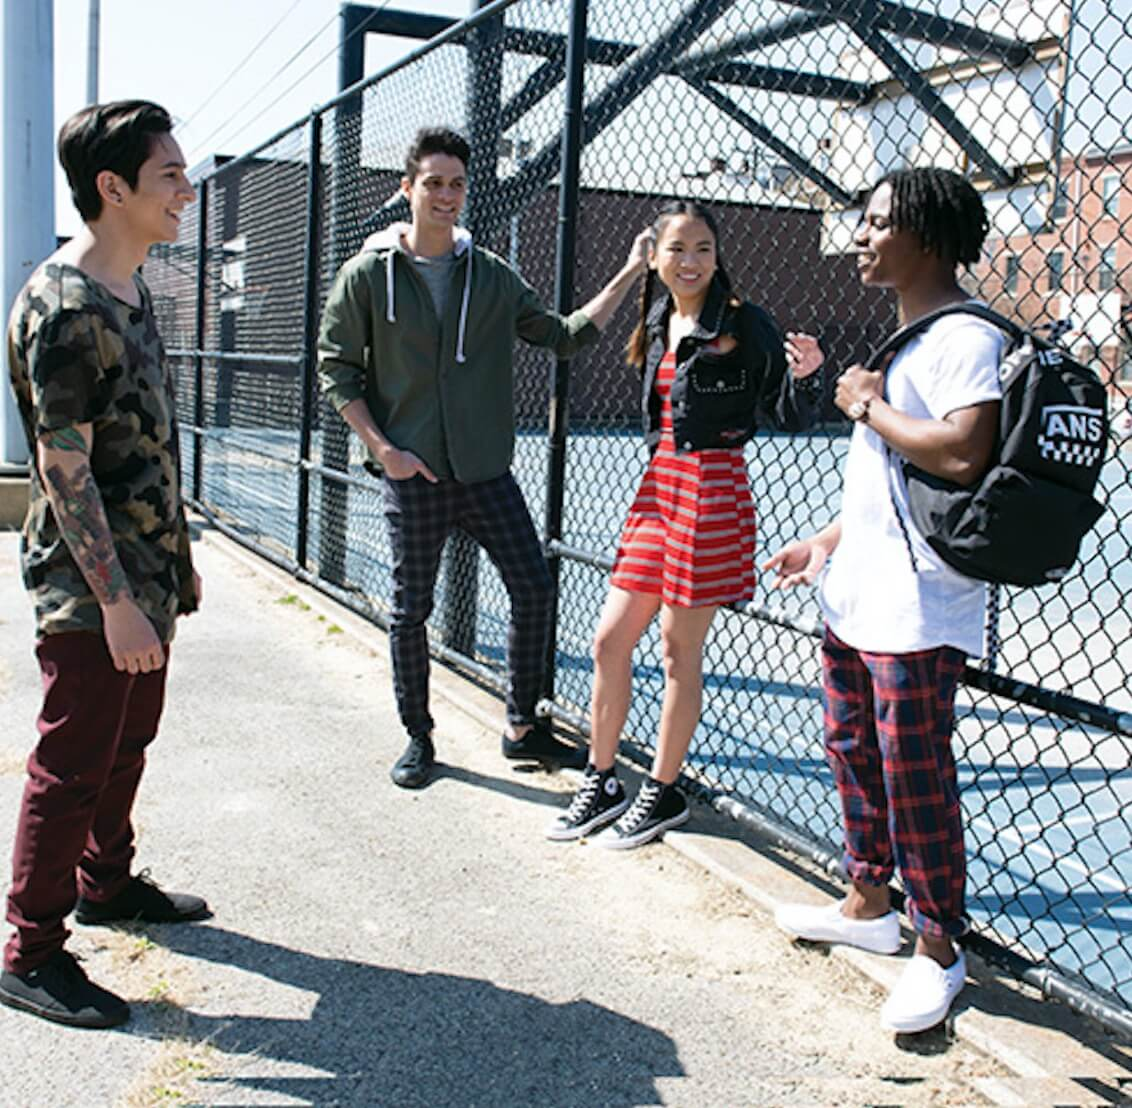 Photo of stylish college students standing next to a fence